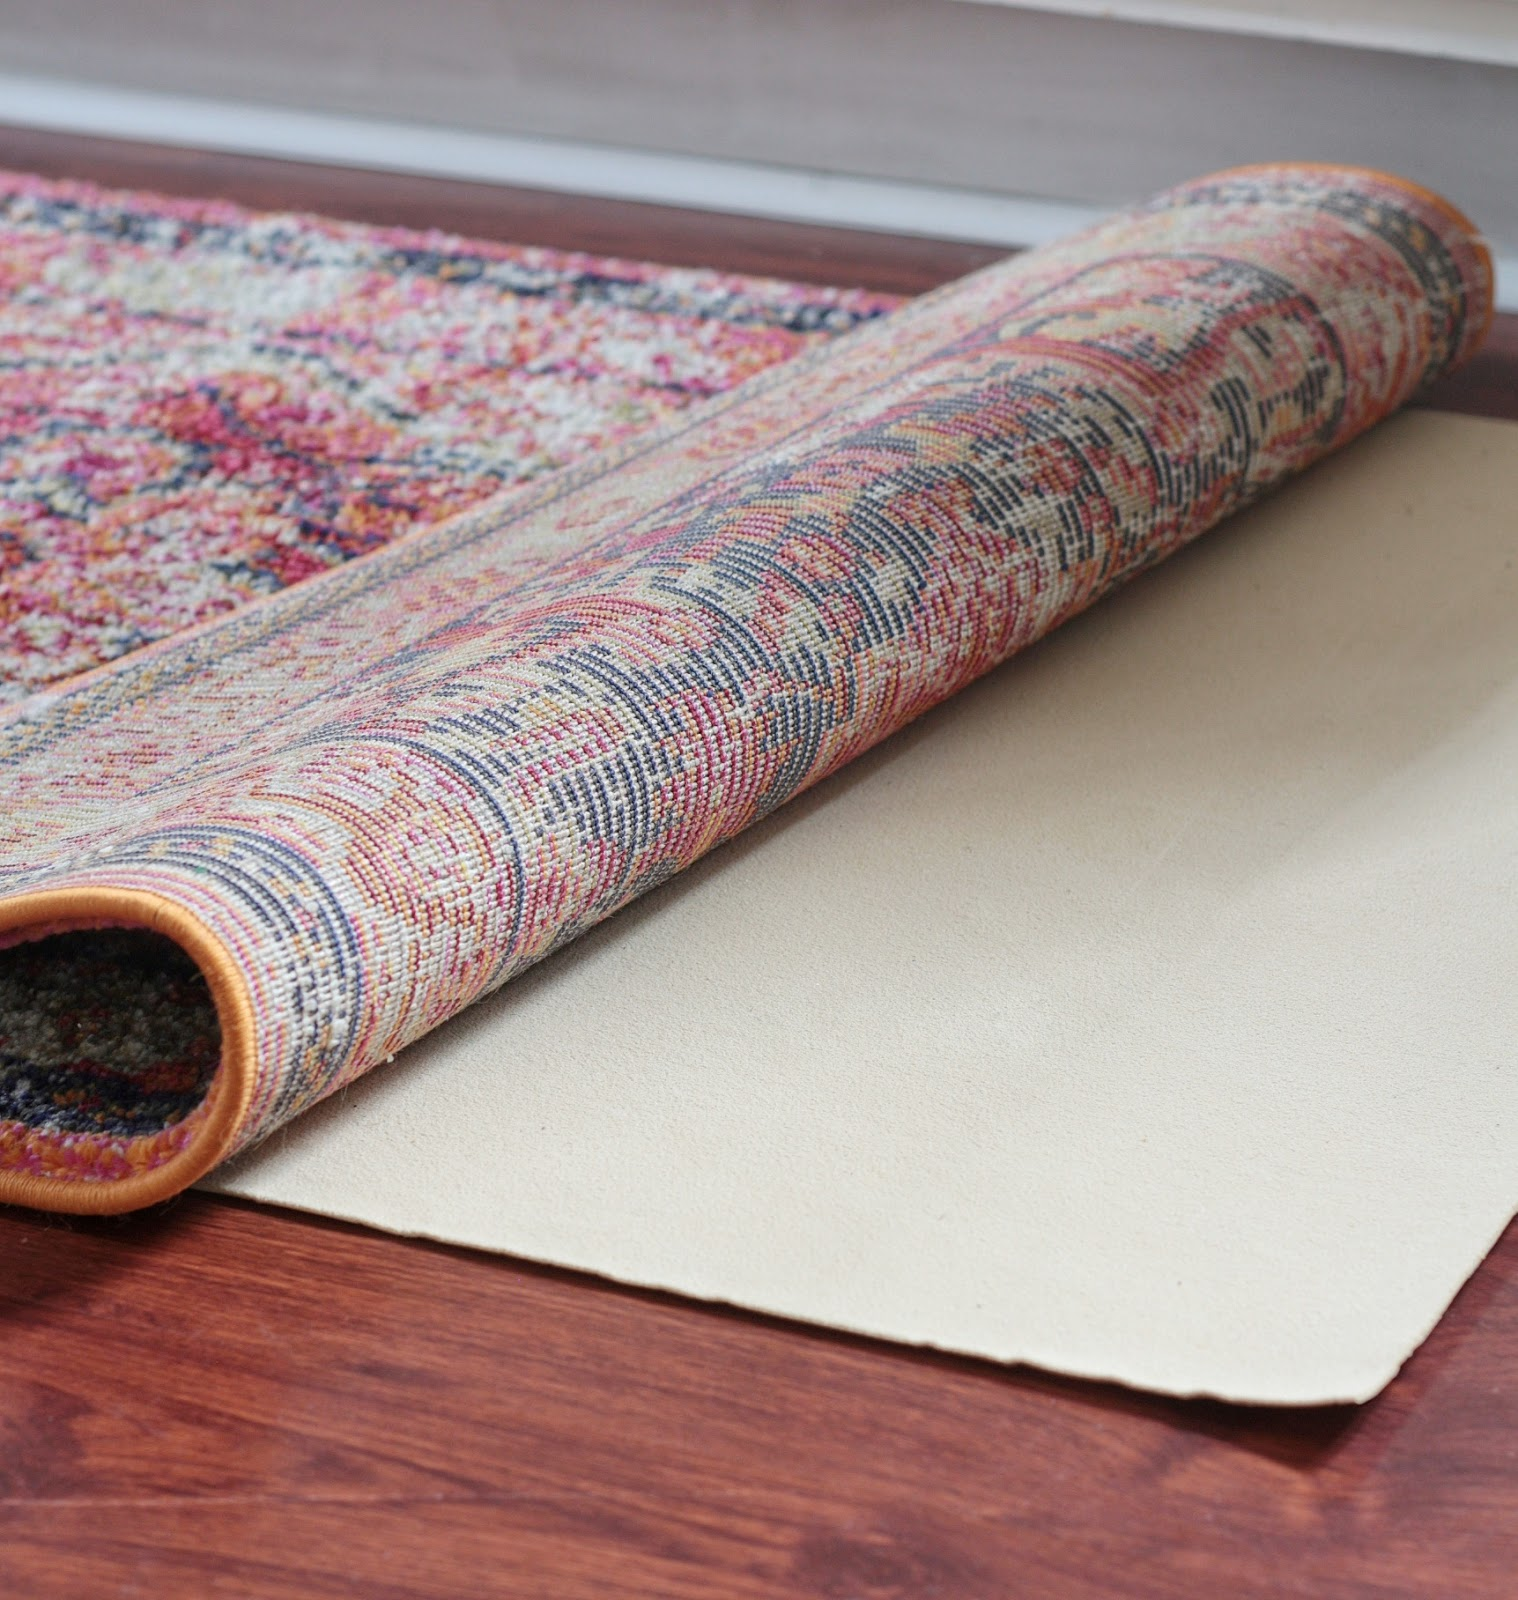 THE Rug Pad You NEED Under Your New Vintage Runner! And A